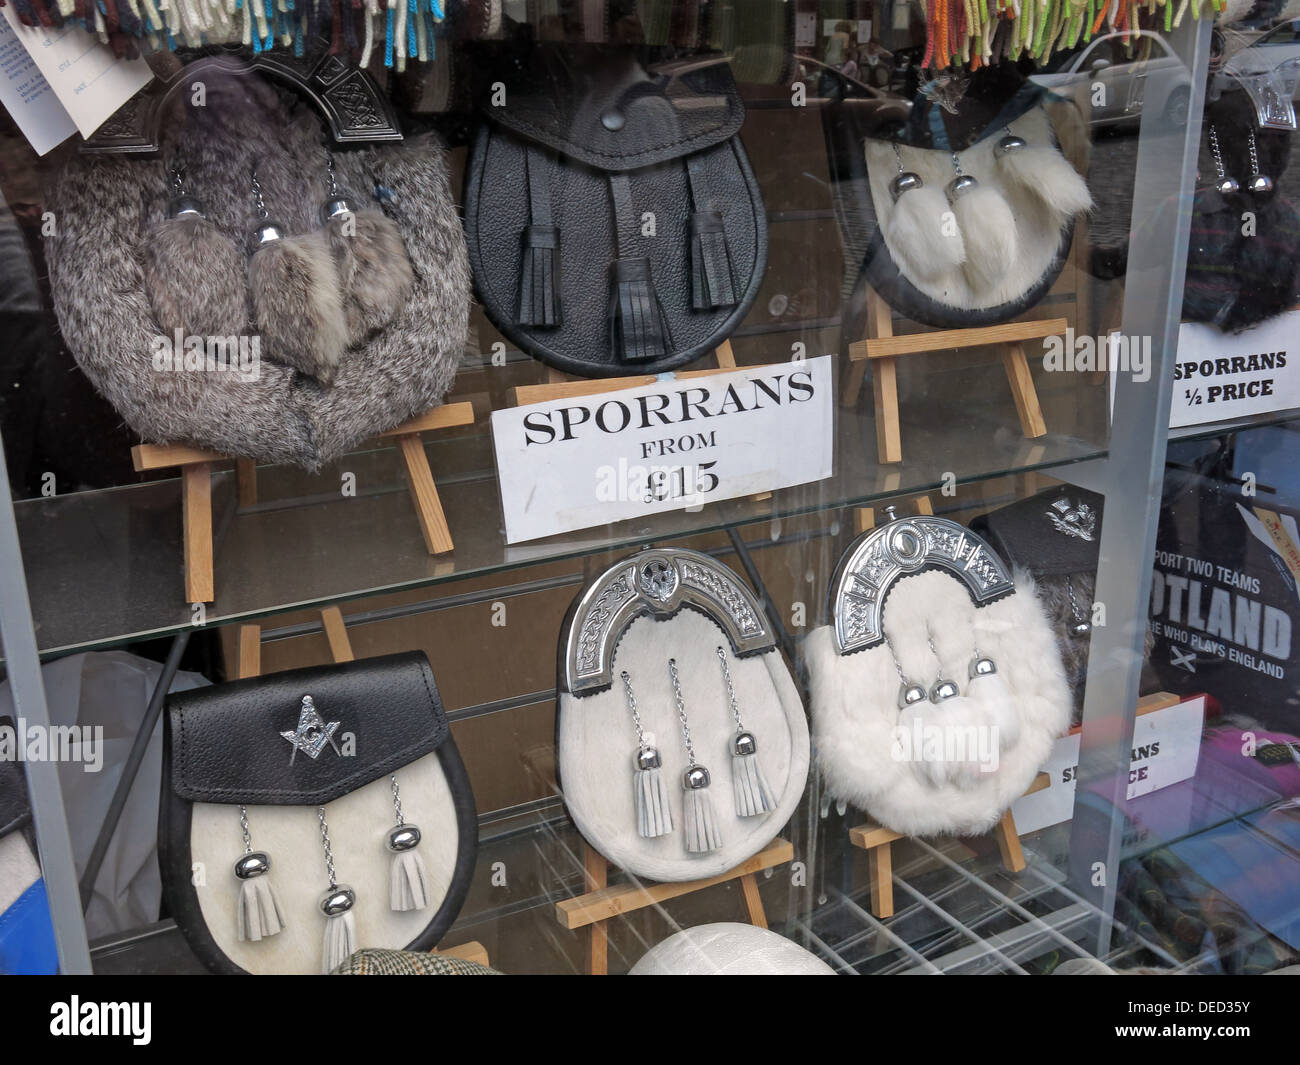 EH1,Scottish,Scot,scots,independance,independence,Sporrans,in,shops,window,display,traditional,dress,attire,hairy,furry,leather,plastic,scotsman,scotsmans,classic,horse,hair,horsehair,purse,male,highland,dress,belt-pouch,belt,pouch,wallet,Gotonysmith,tourist,tourism,travel,traveller,destination,thing,to,see,building,architecture,classic,old,buildings,cantle,may,have,a,set,stone,jewel,or,emblems,such,as,Saint,Andrew,a thistle,Clan,or Masonic symbols.,Buy Pictures of,Buy Images Of